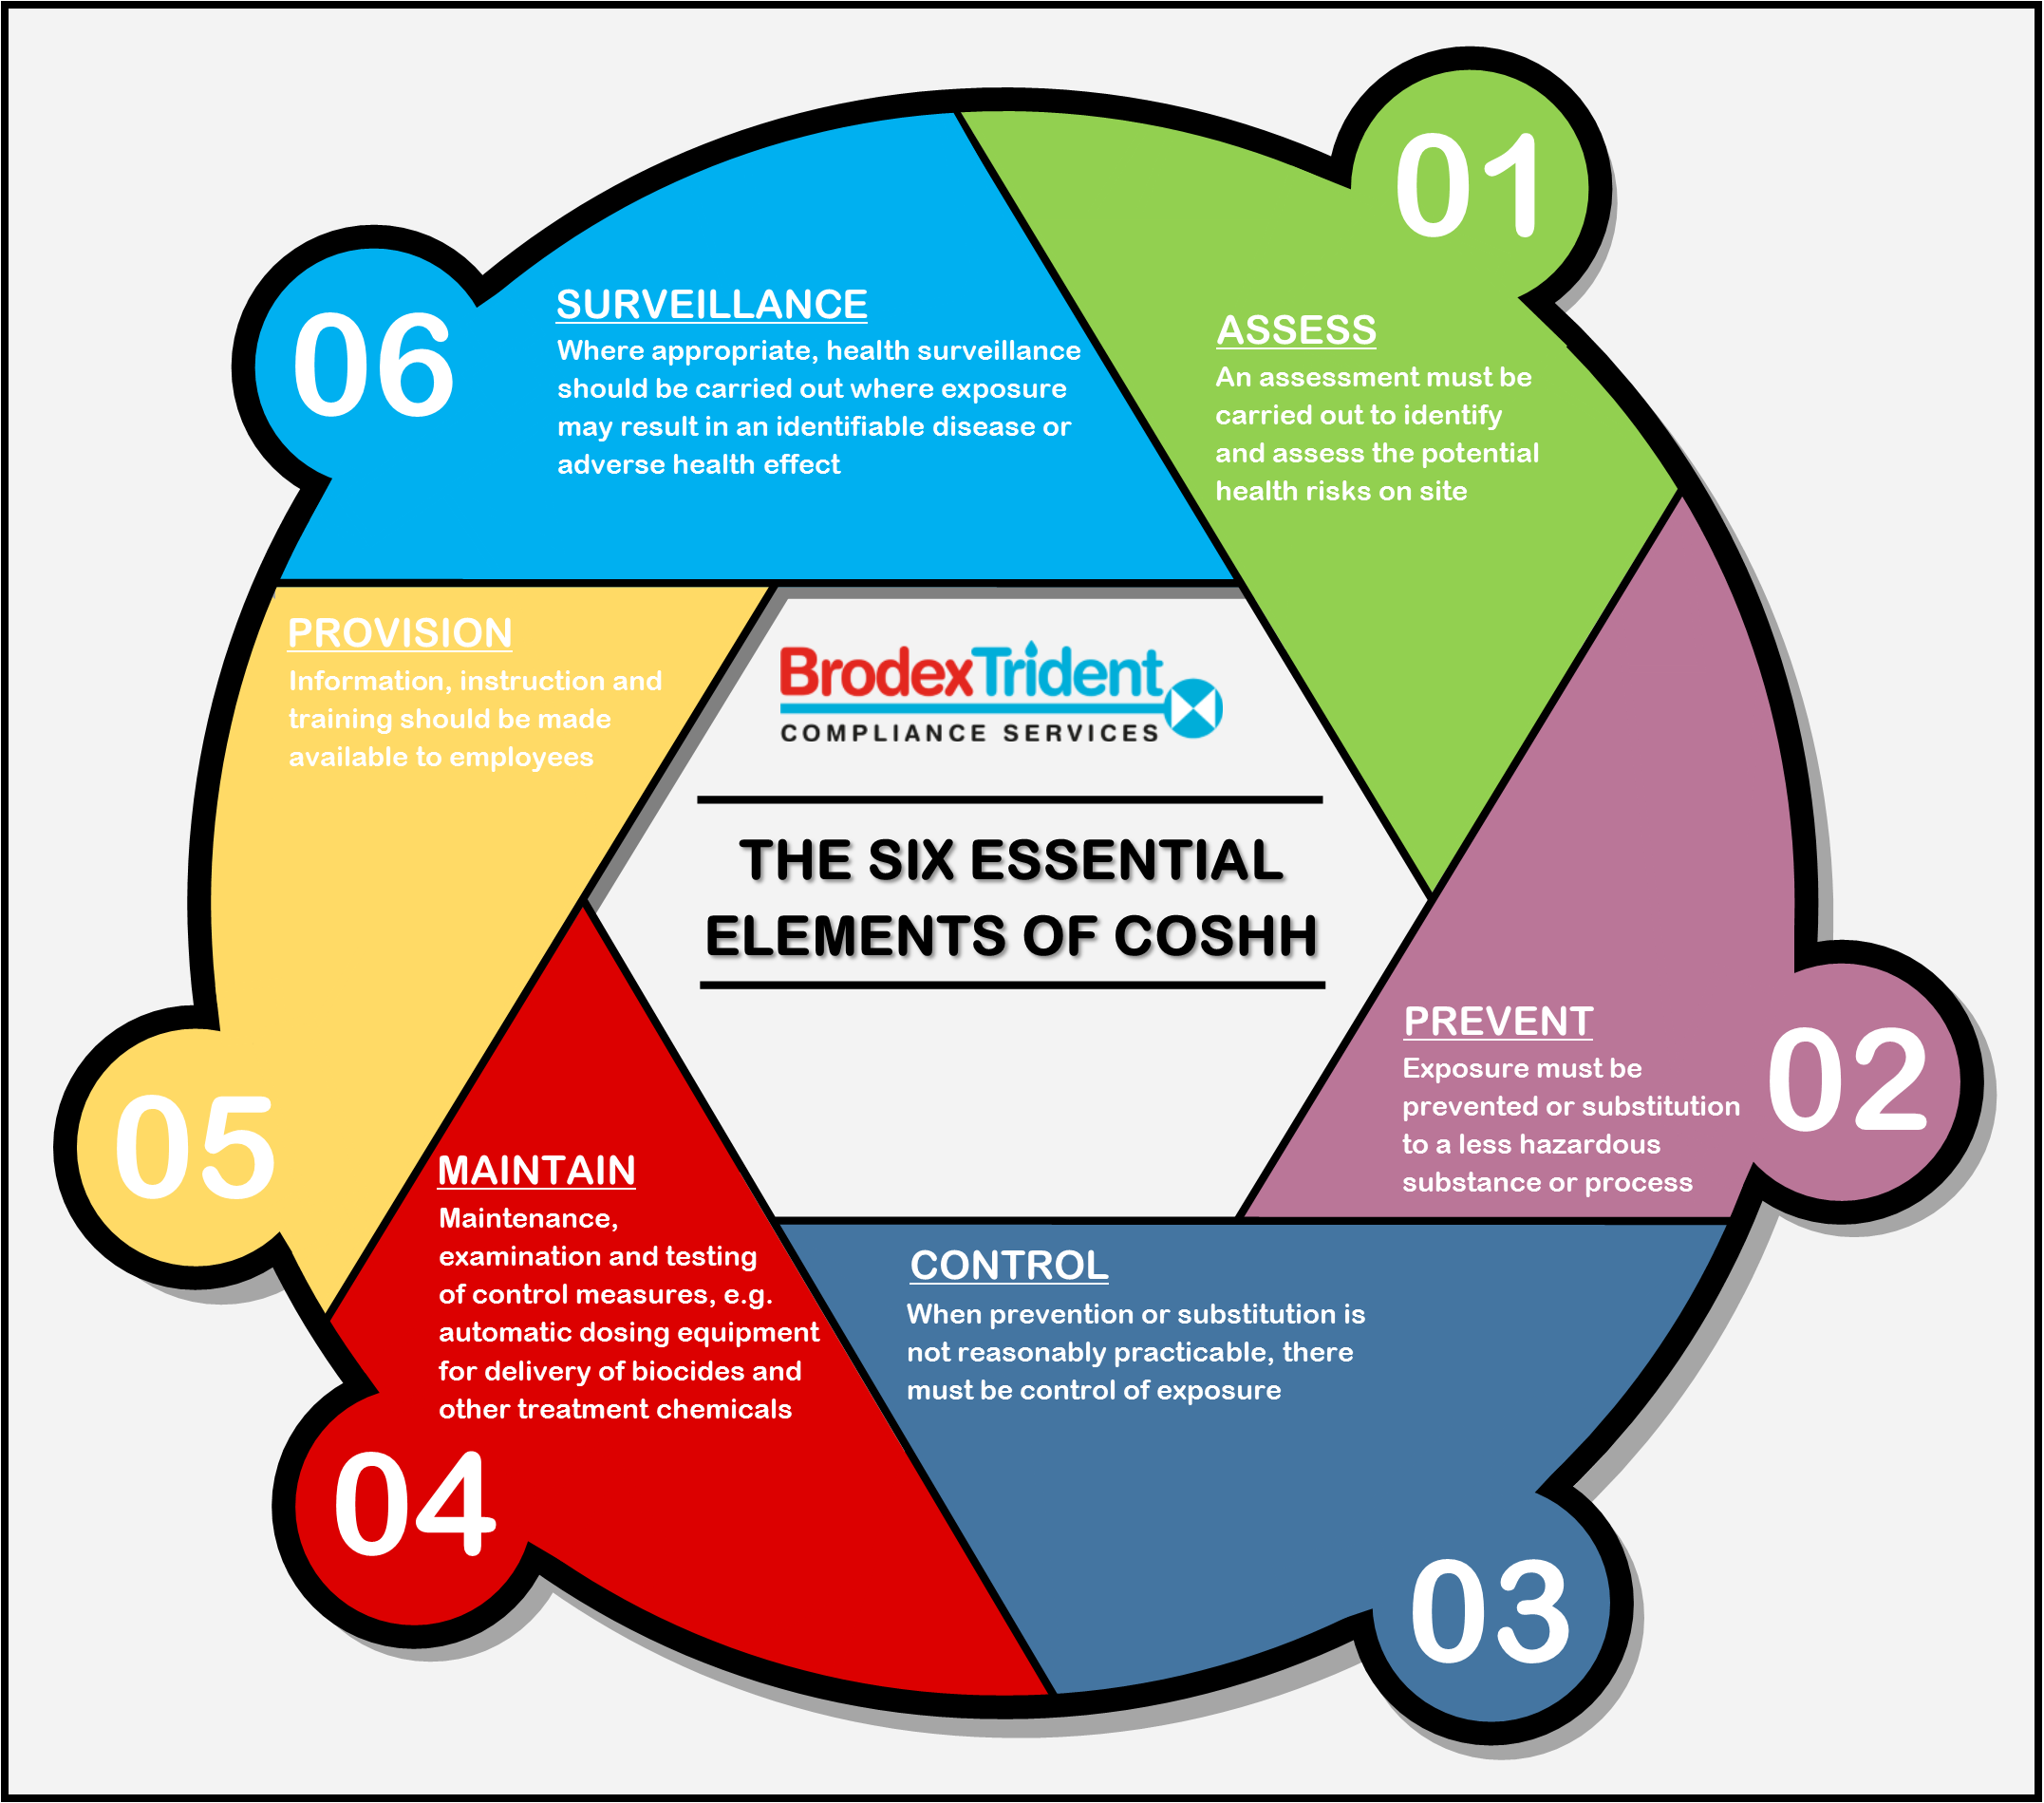 The 6 Essential Elements of COSHH [Infographic]